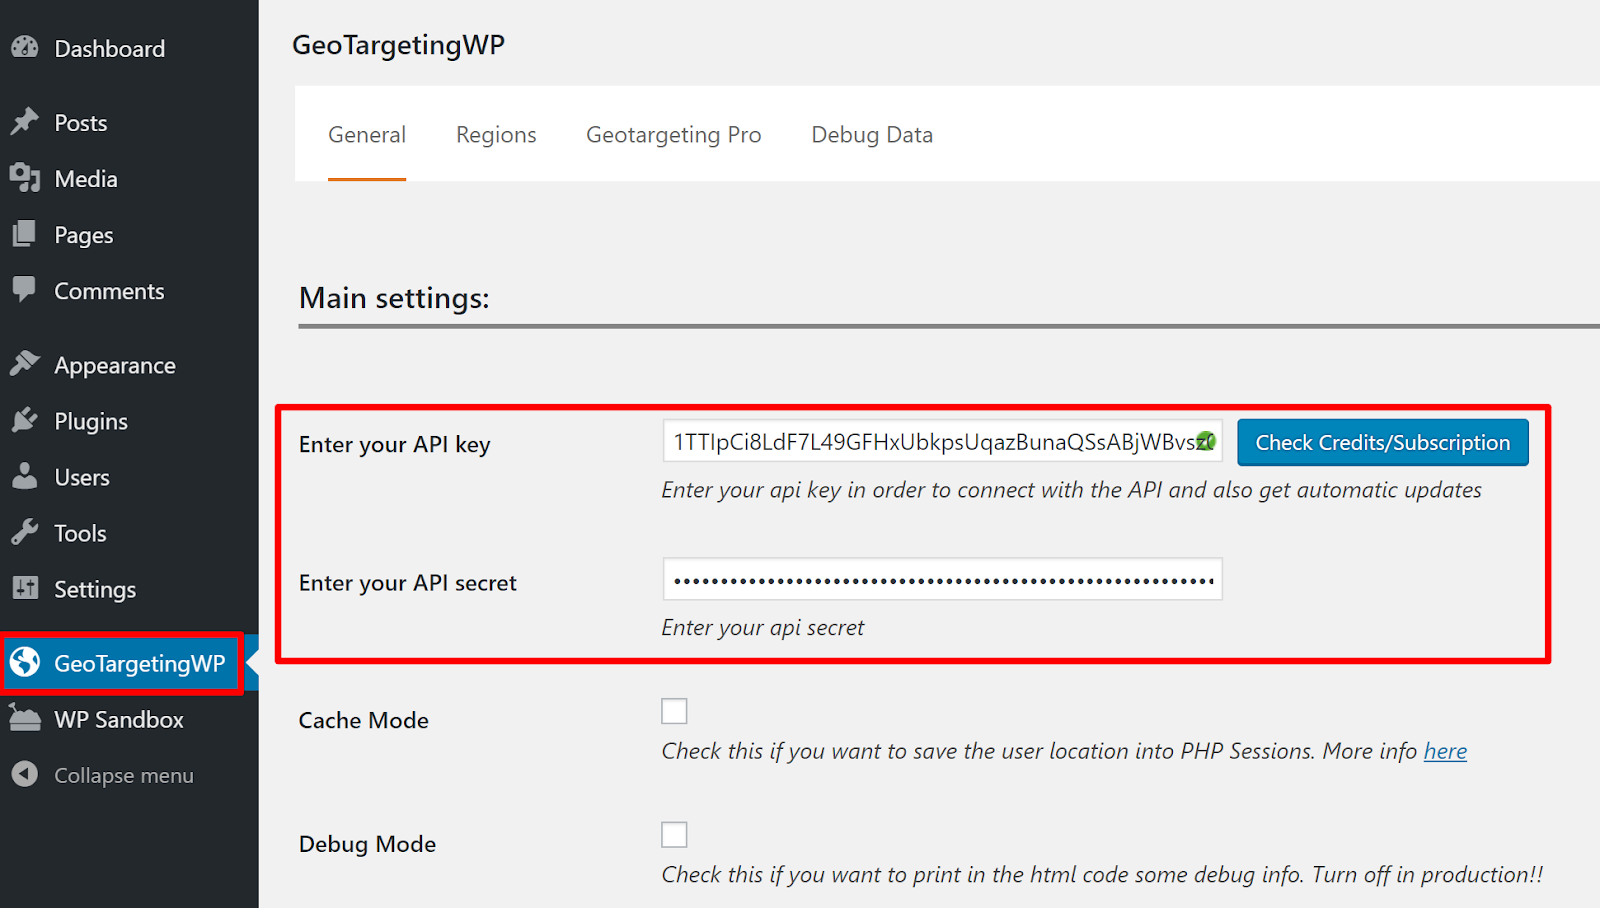 geotargetingwp settings